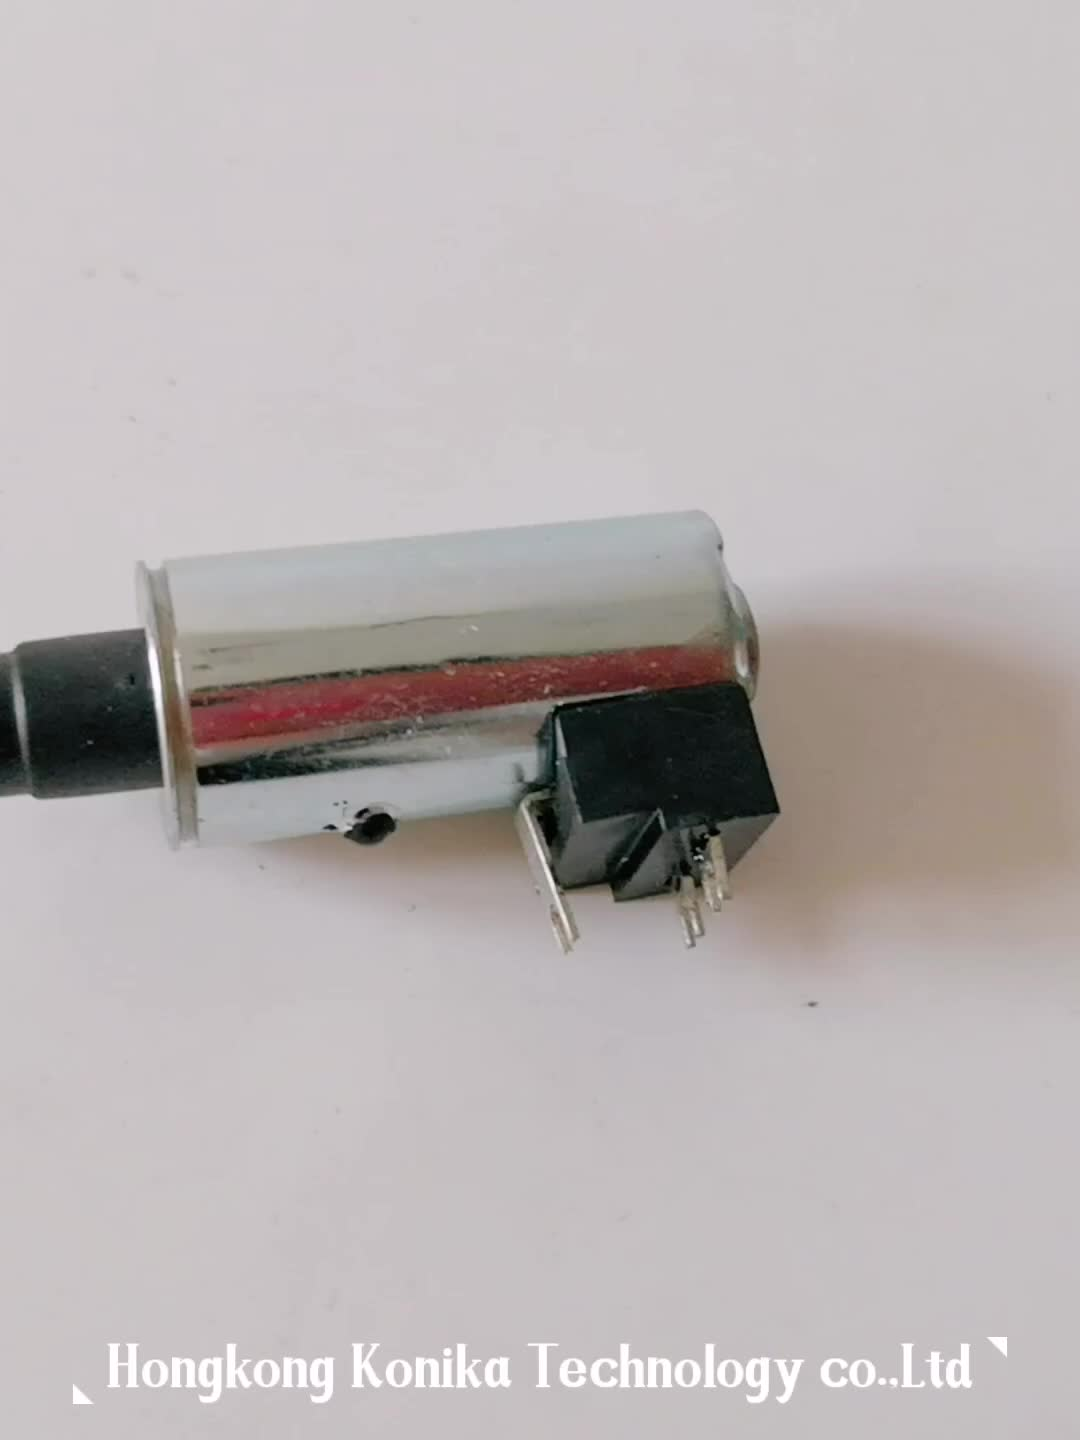 MarkemImaje Spare Parts ENM5044 Solenoid Valve for 9028/9030/9040 CIJ inkjet printer